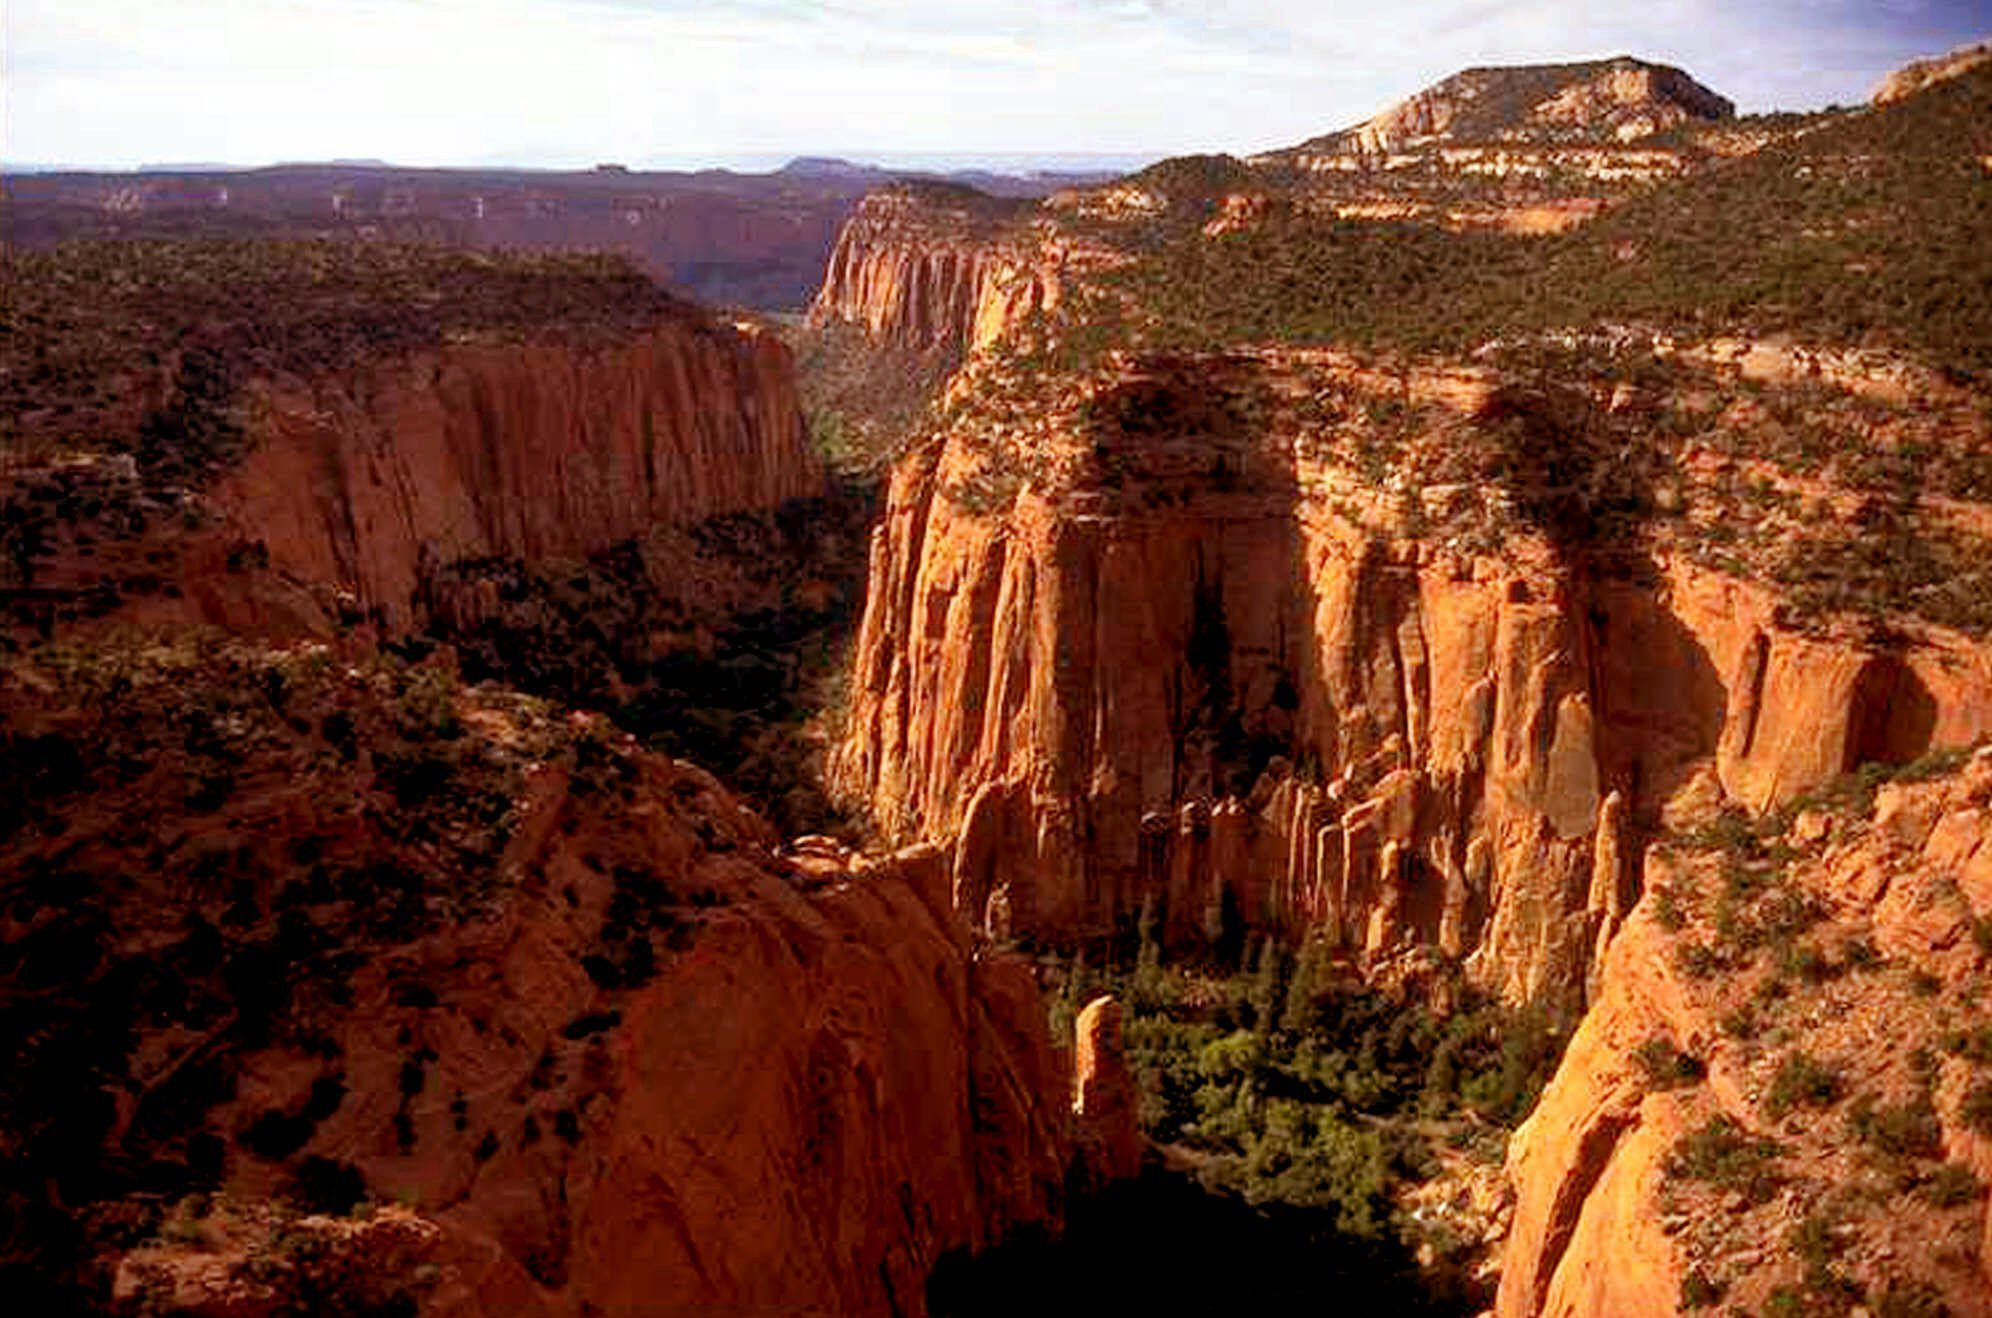 Grand Staircase – Escalante National Monument in Utah was established by President Bill Clinton in 1996